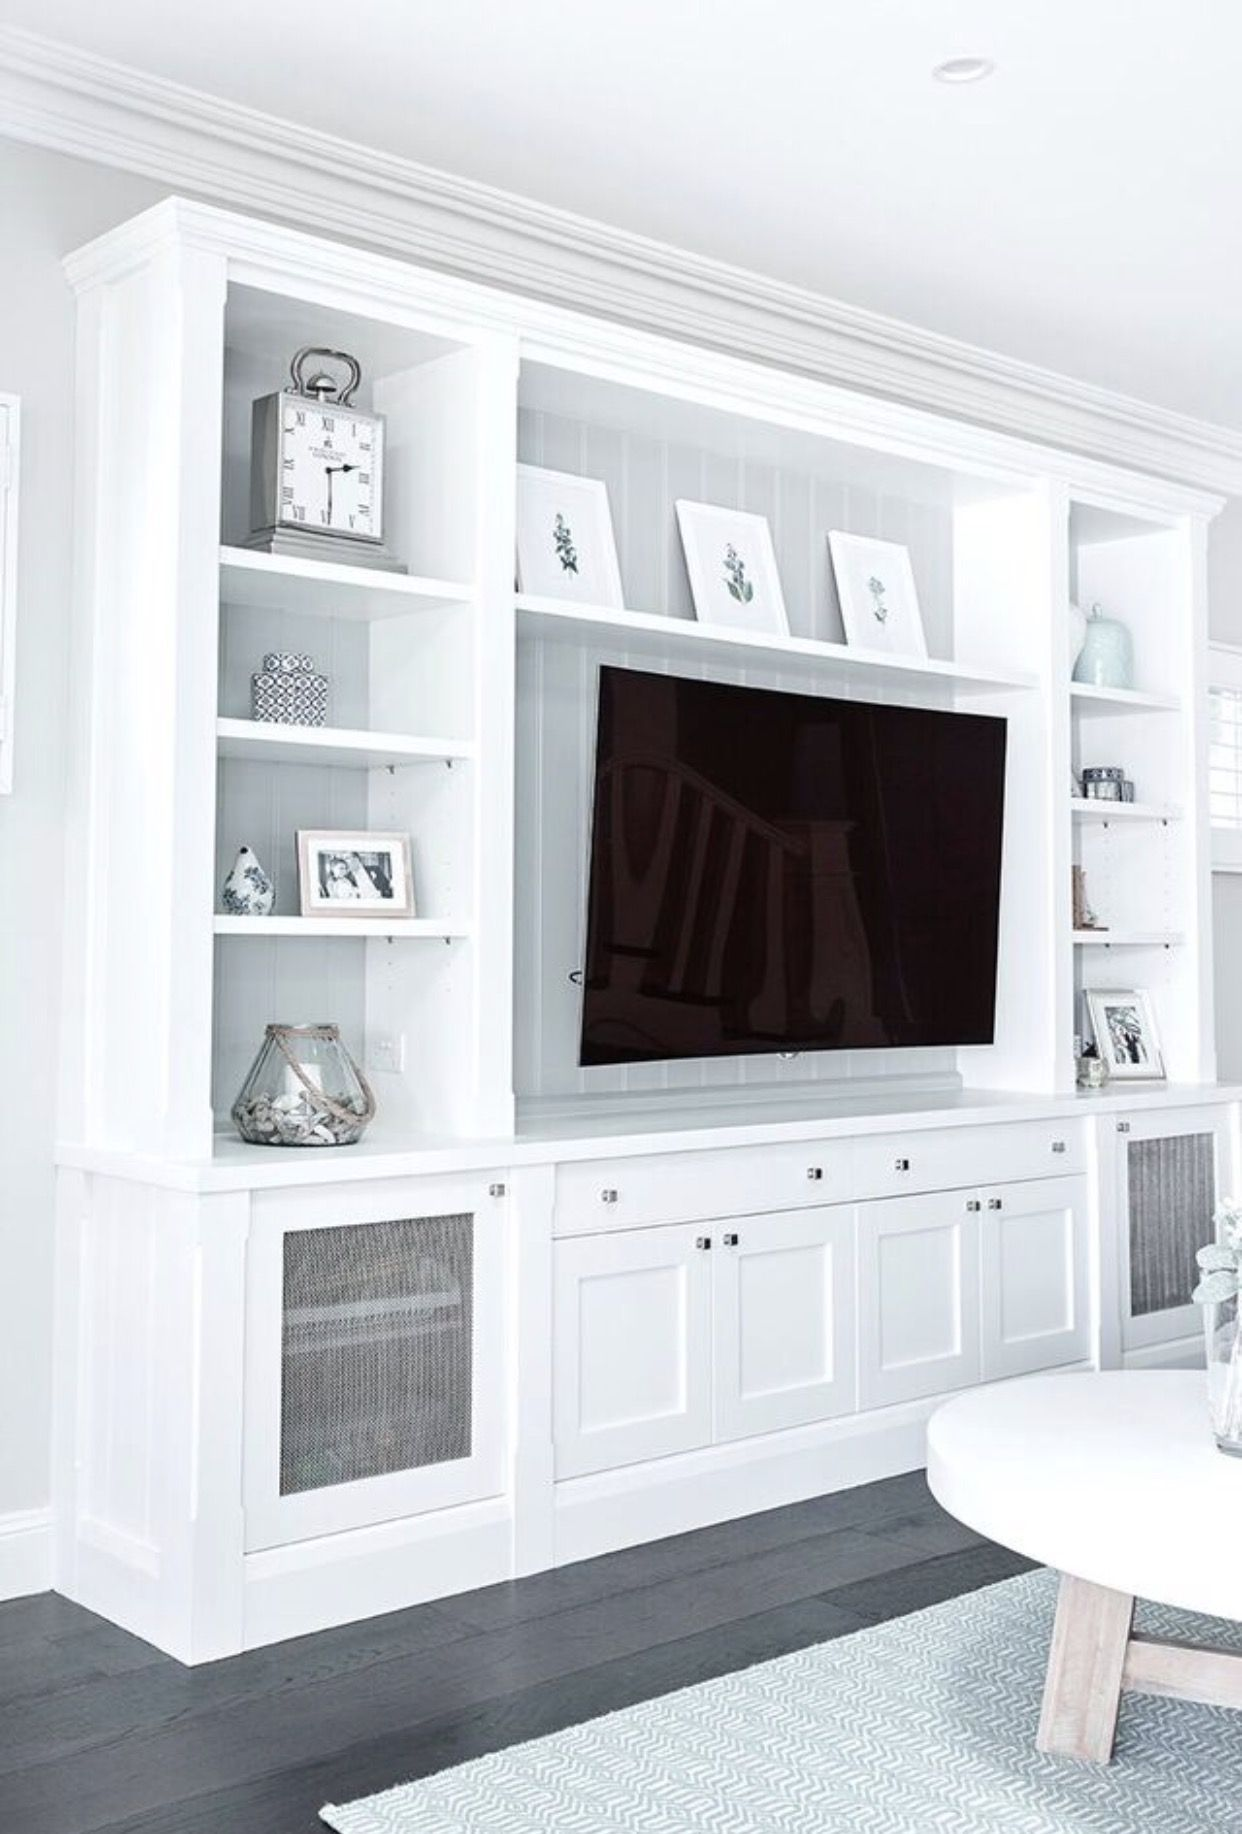 Our Custom Family Room Tv Cabinet Thanks To Provincial Kitchens Clovelly Cape Cod Home Living Room Built Ins Living Room Tv Wall Living Room Entertainment